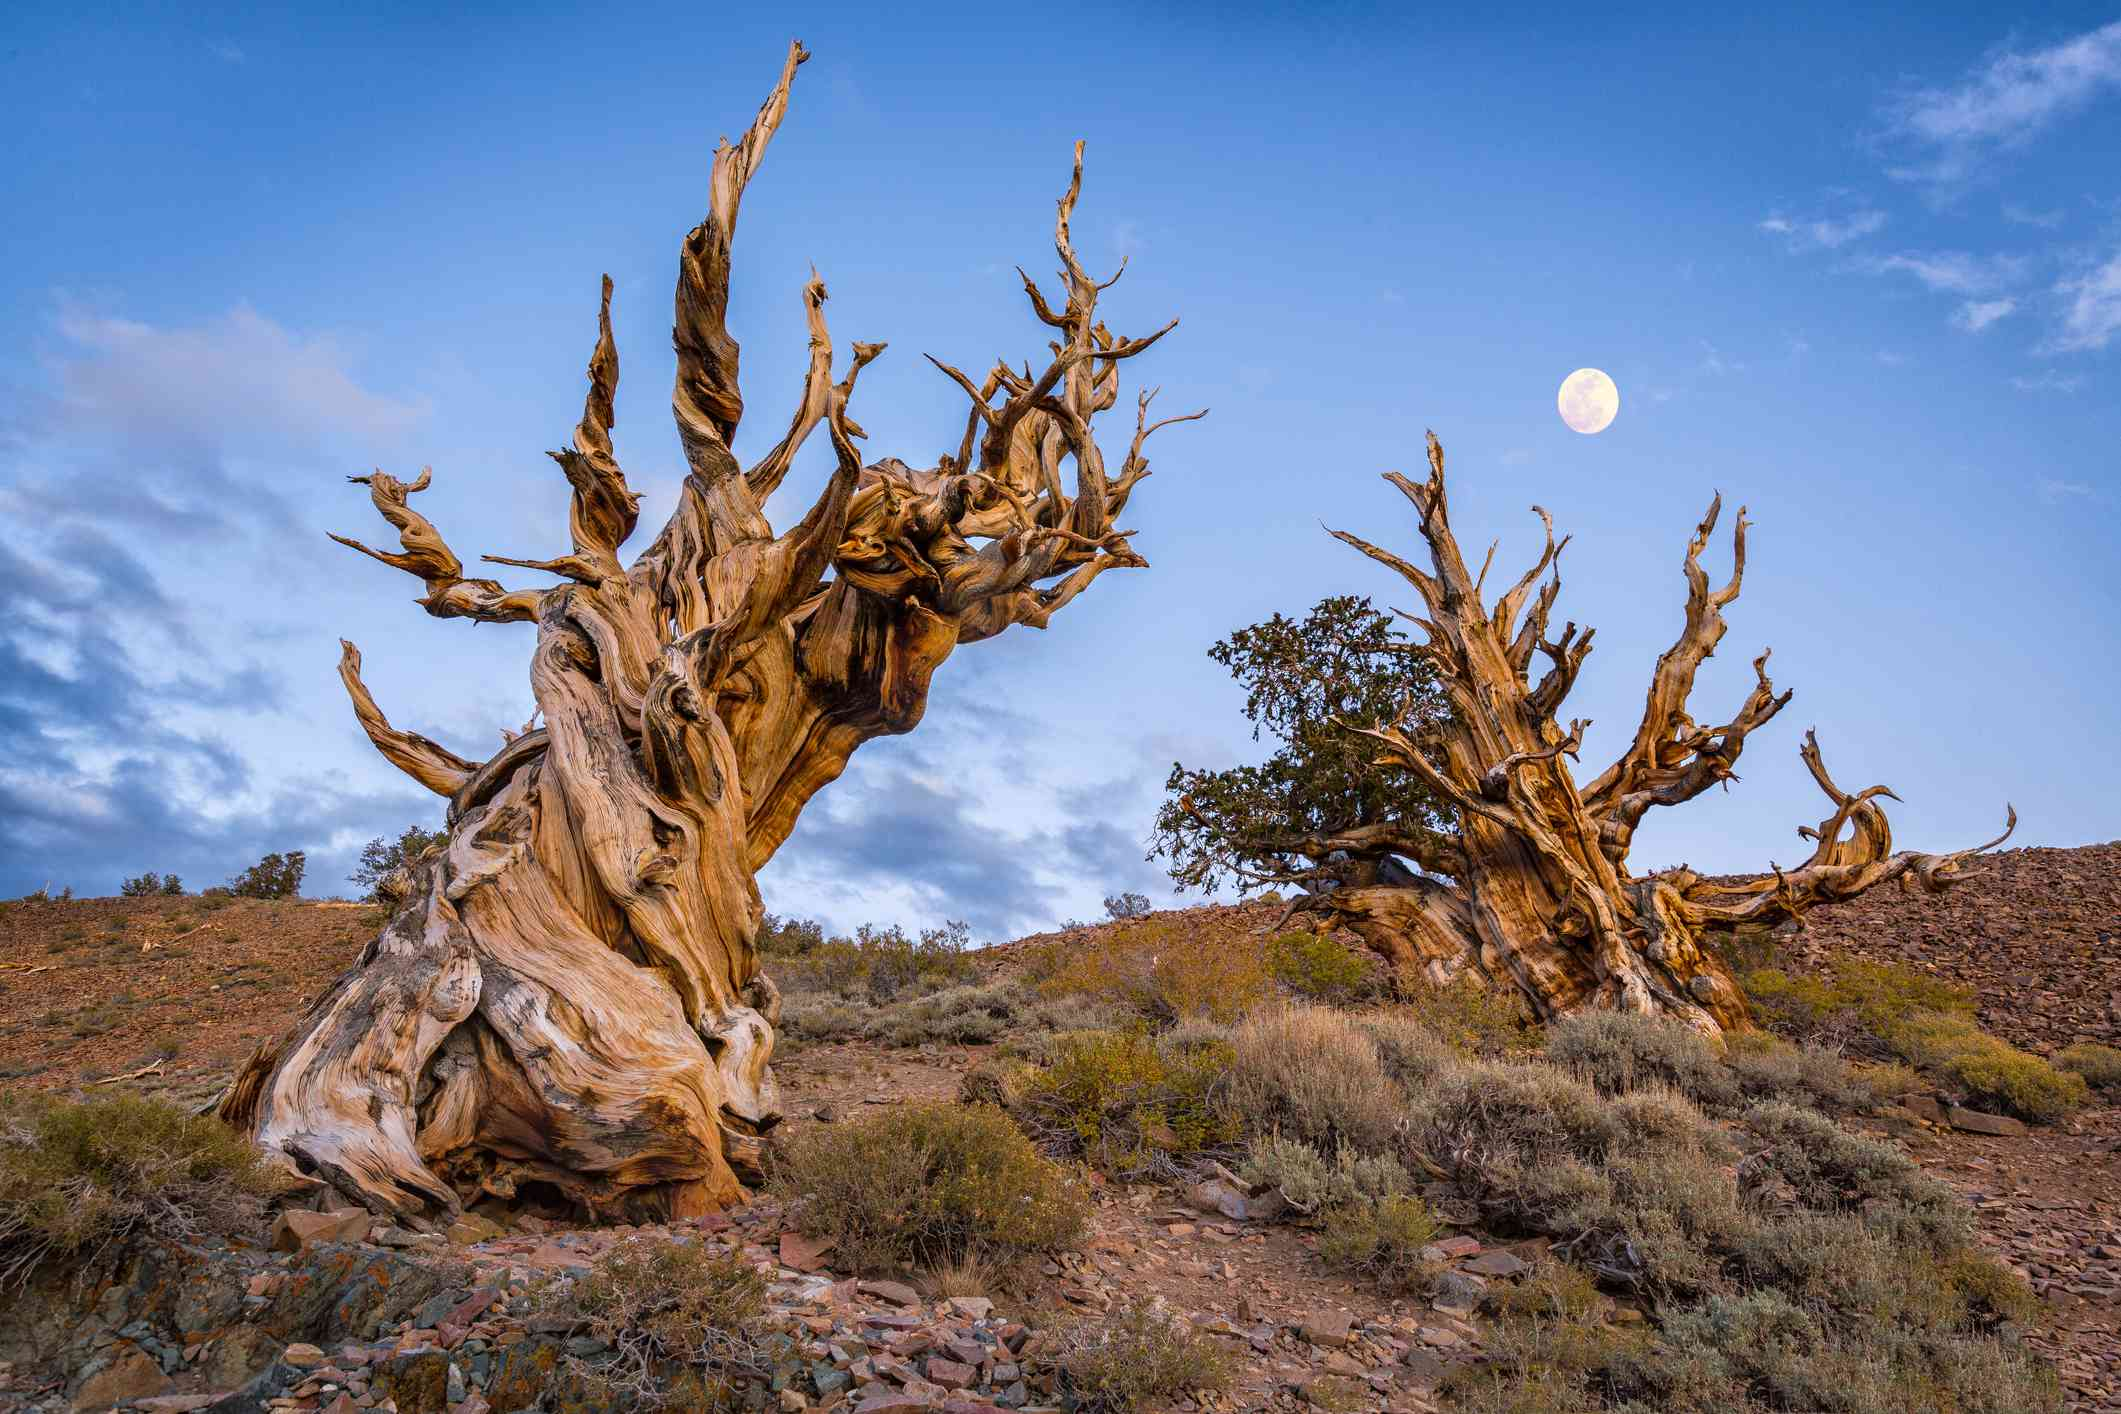 Moon rising over twisting Bristlecone Pine Trees at dusk